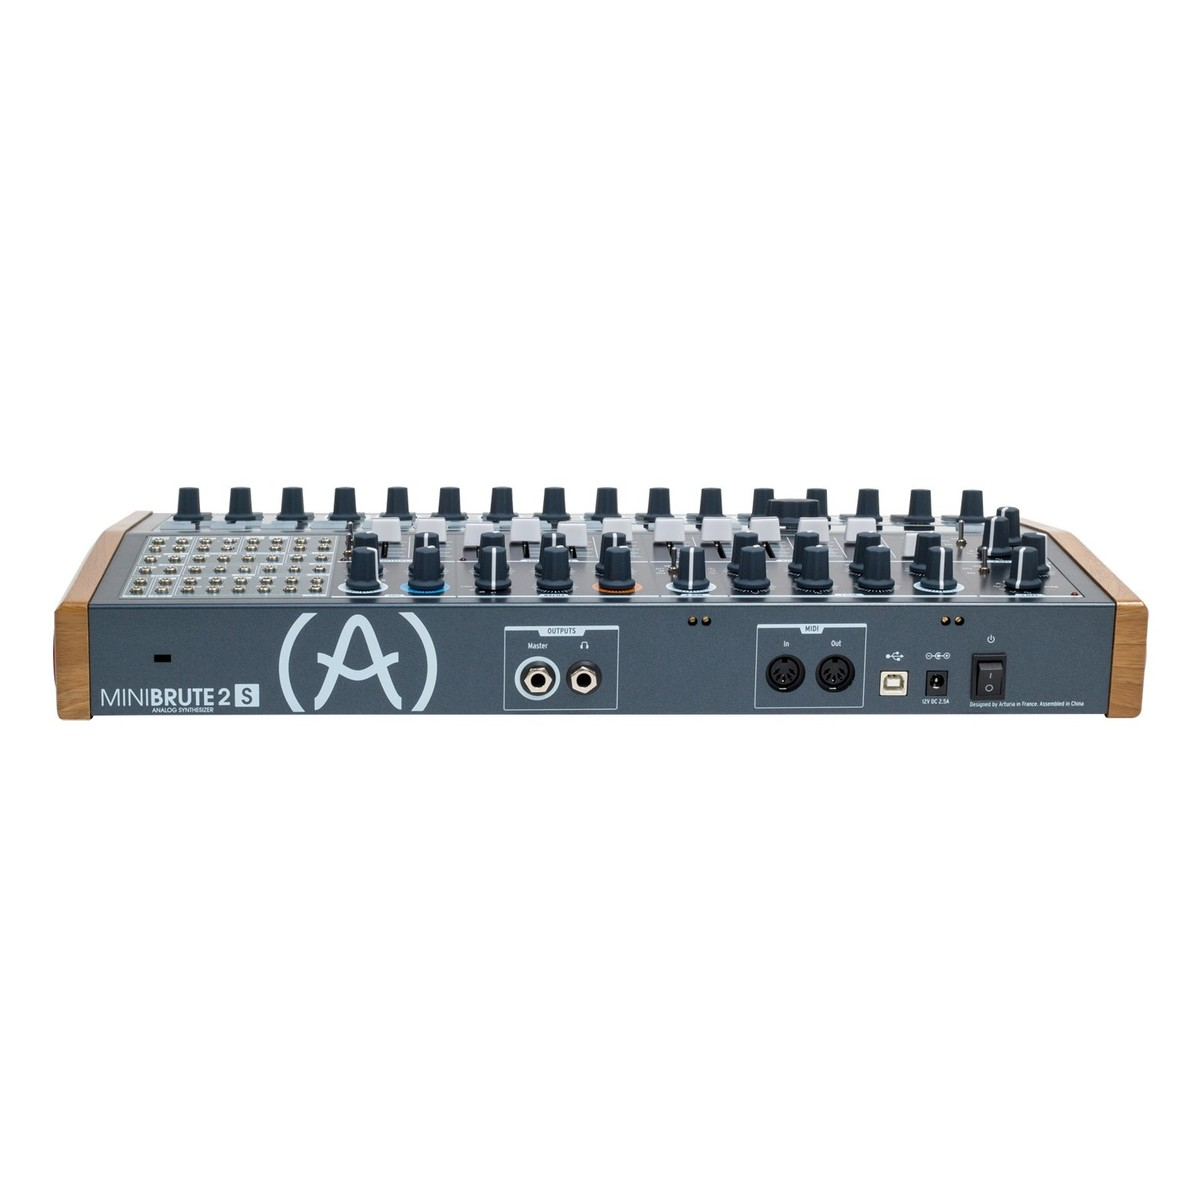 arturia minibrute 2s semi modular analog sequencing synth module at gear4music. Black Bedroom Furniture Sets. Home Design Ideas